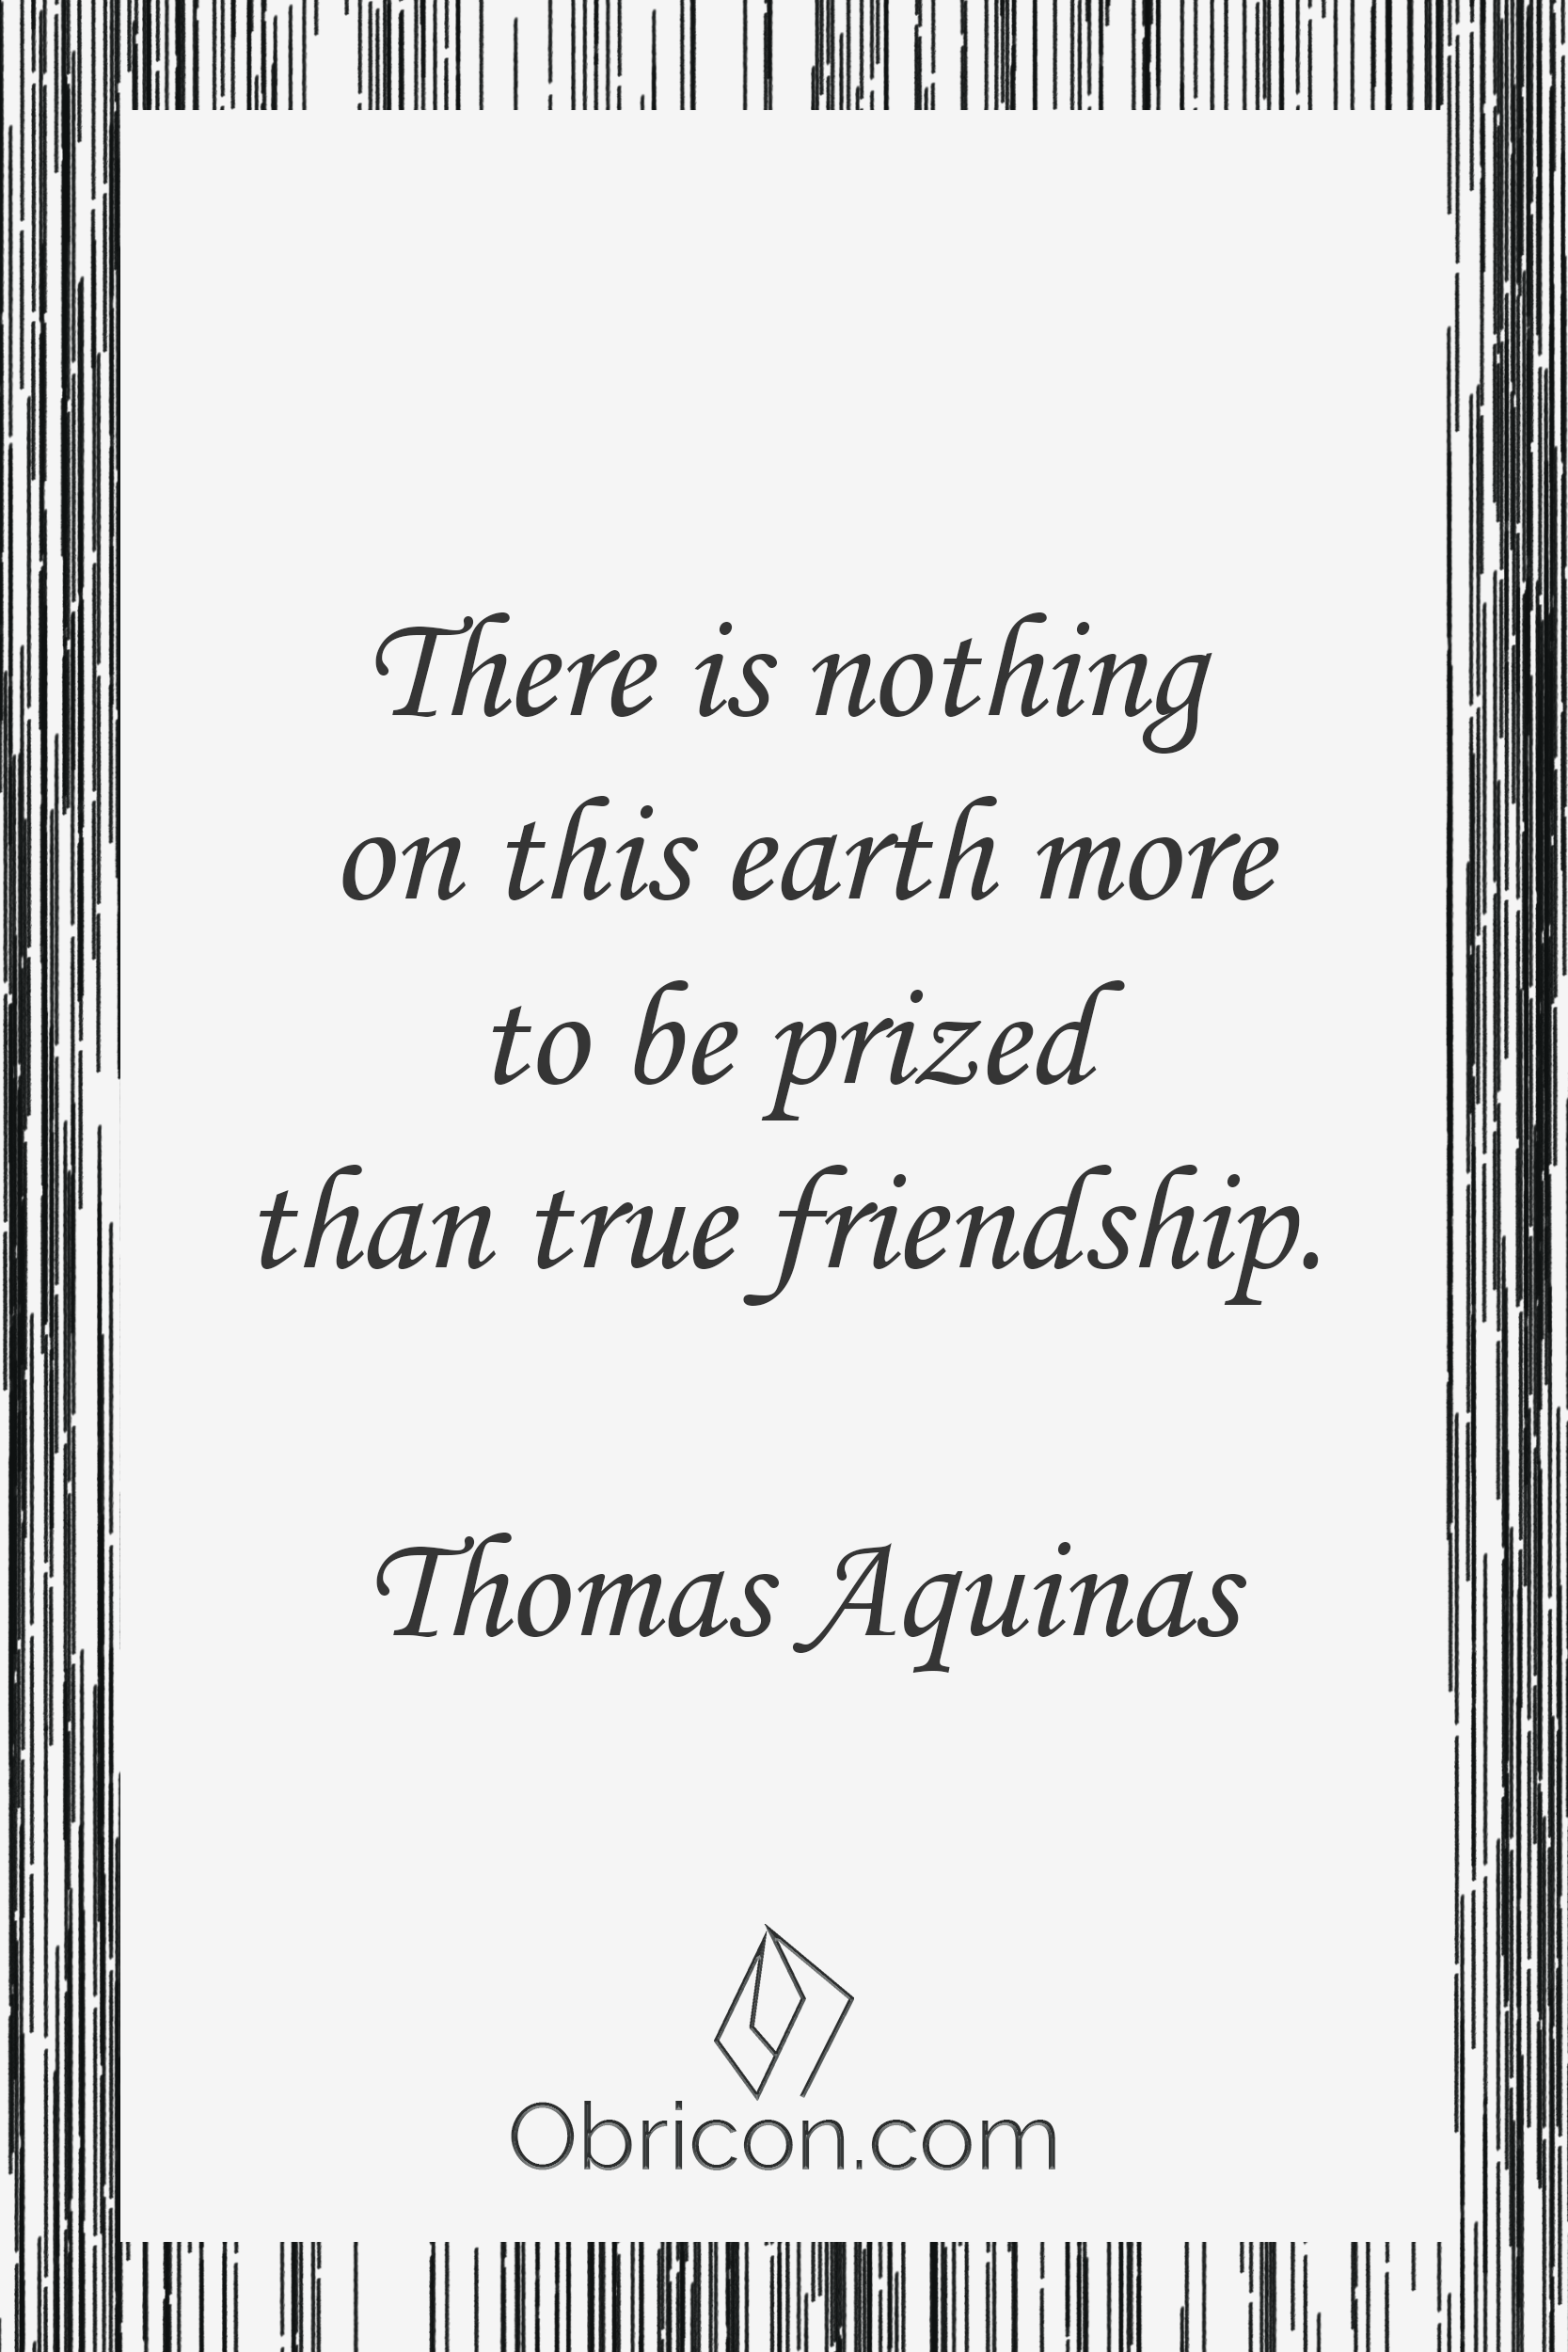 There is nothing on this earth more to be prized than true friendship. Thomas Aquinas.png